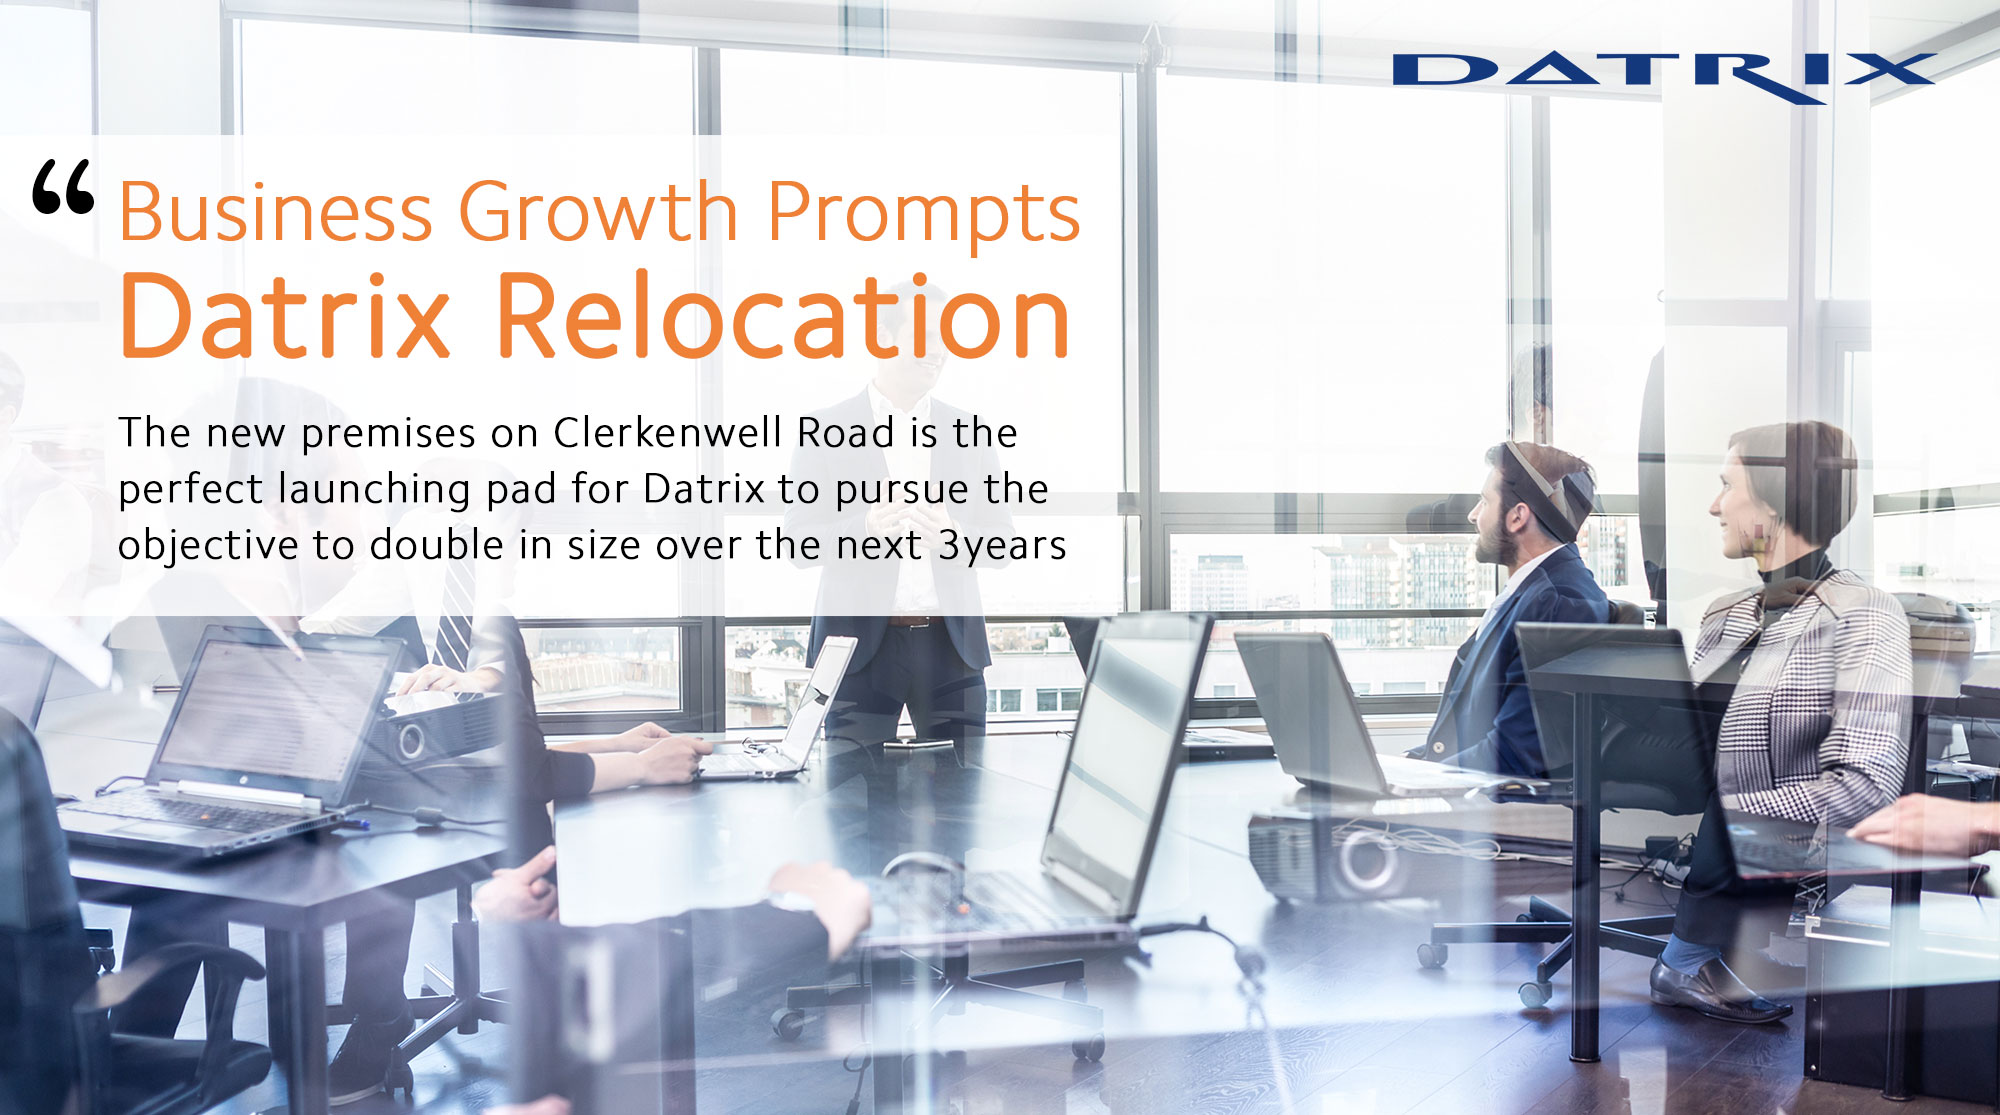 Business-Growth-Prompts-Datrix-Relocation